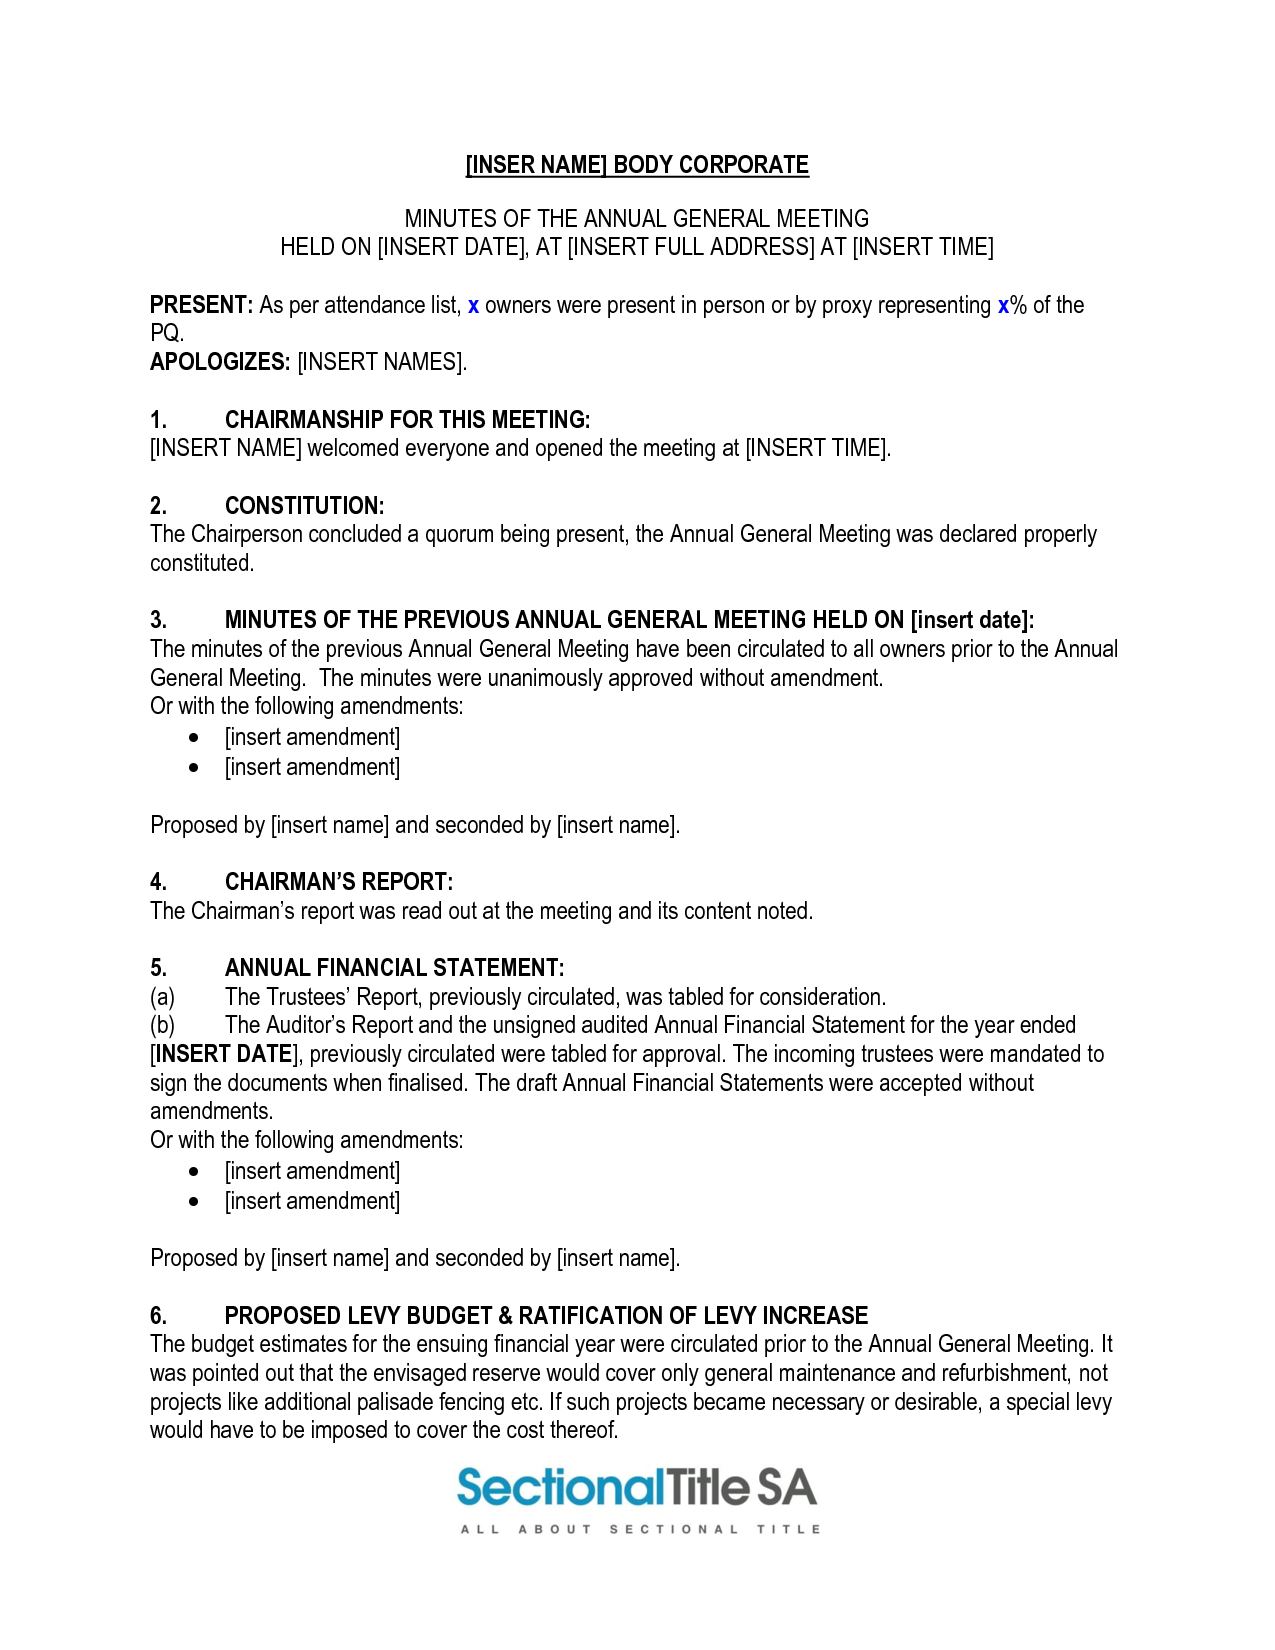 Sample Of Corporate Minutes - Free Printable Documents